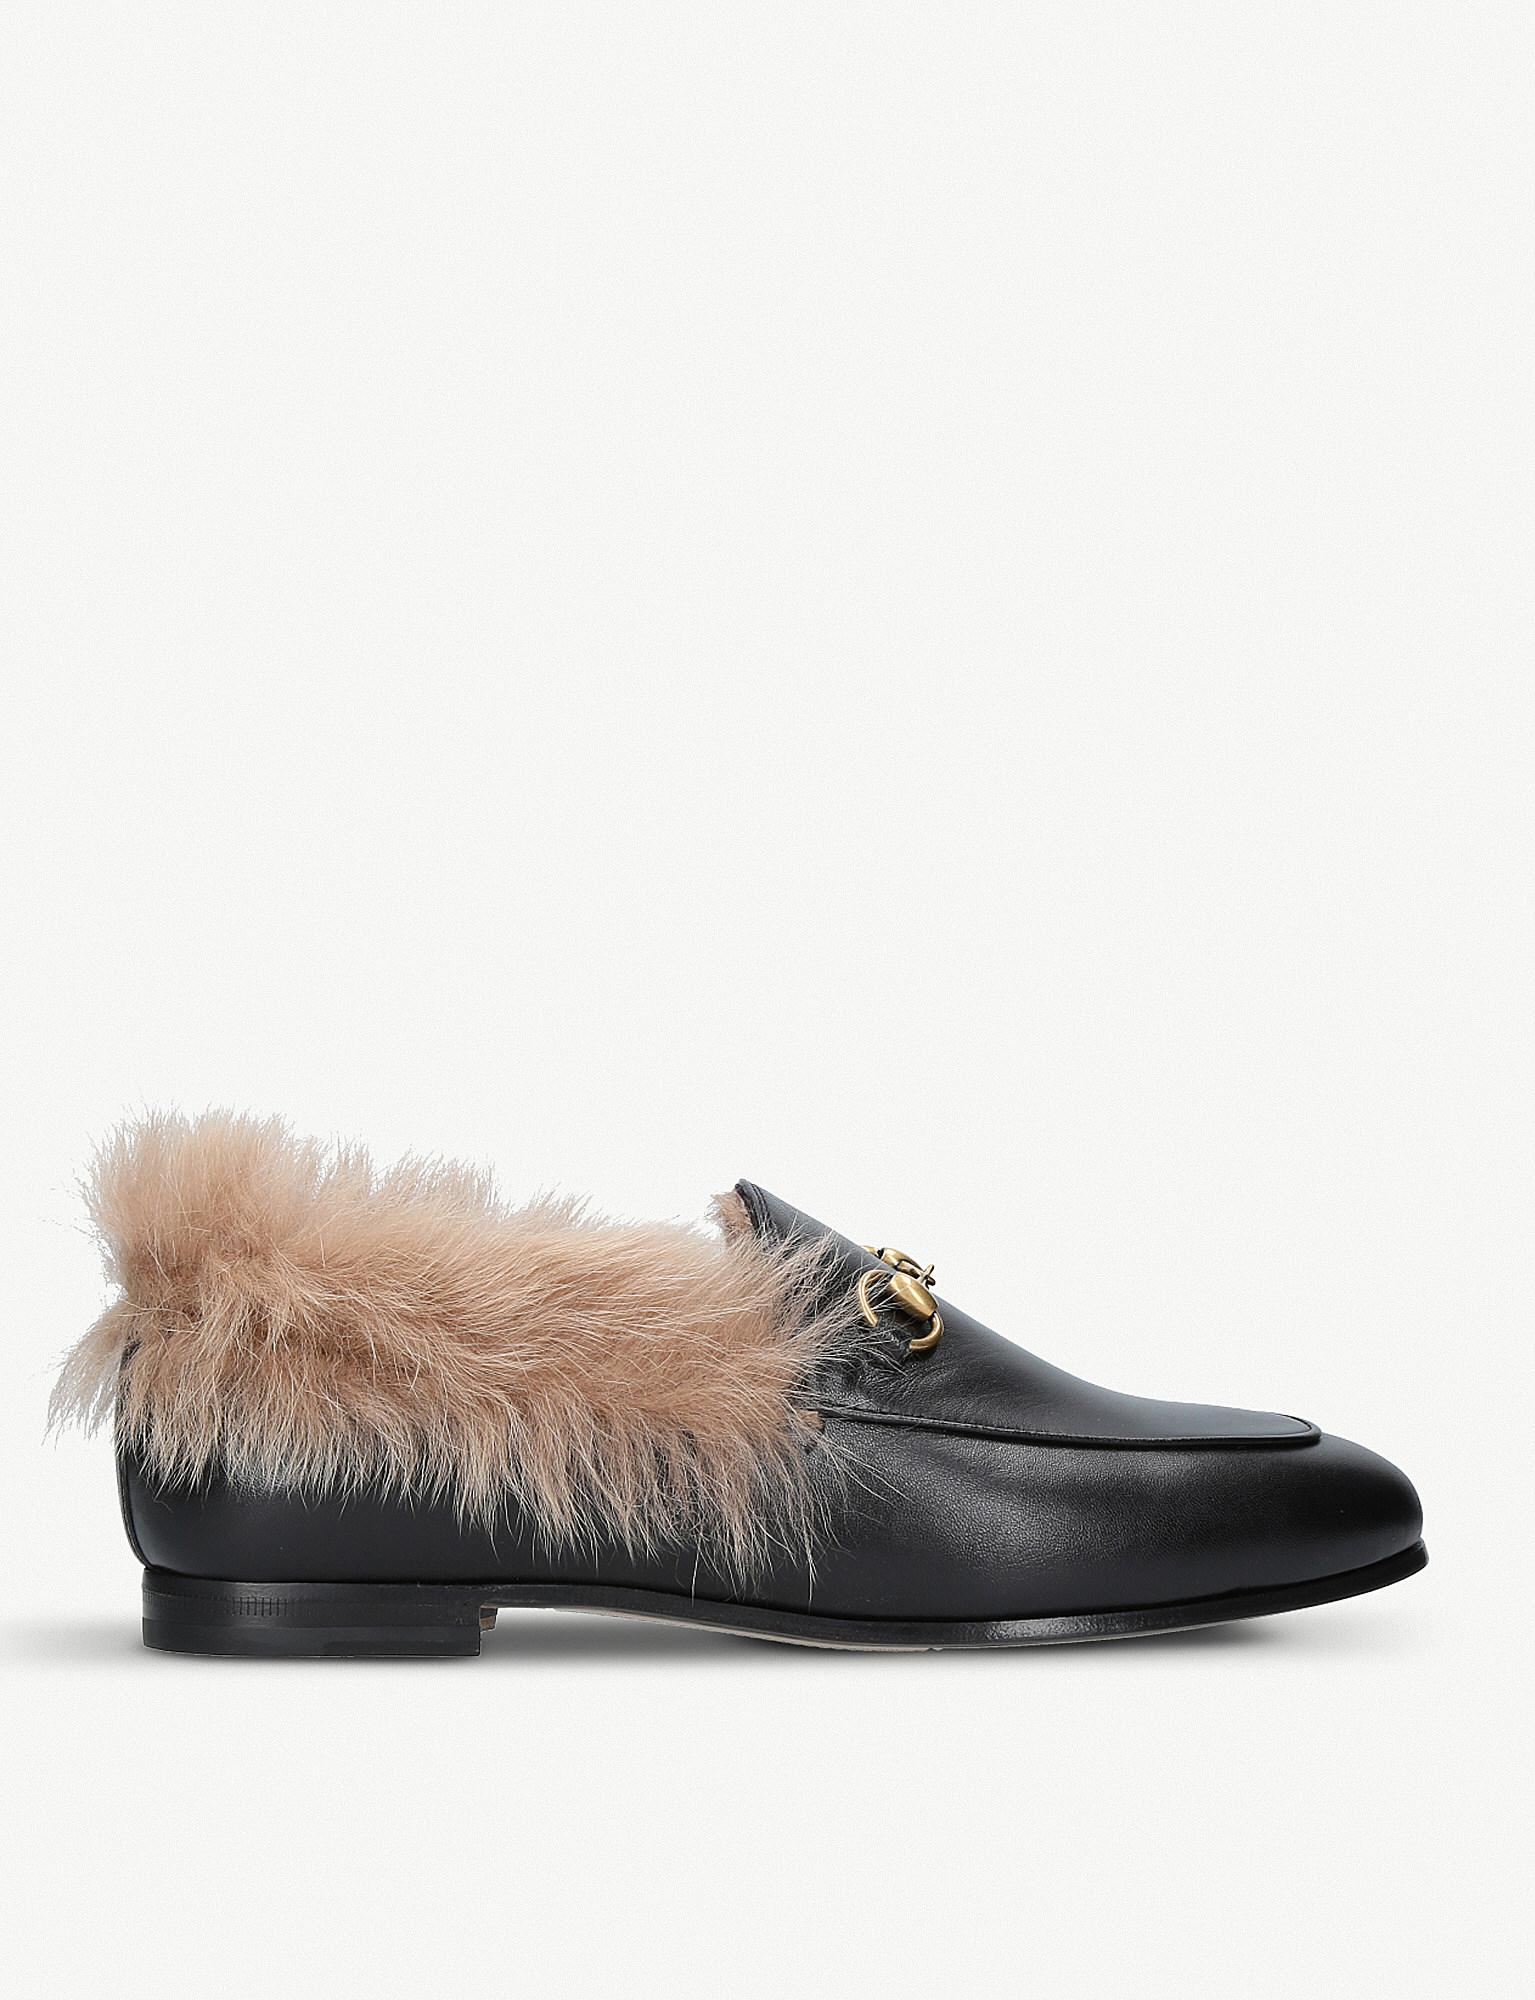 7fe9496468d Lyst - Gucci Jordaan Leather And Shearling Loafers in Black